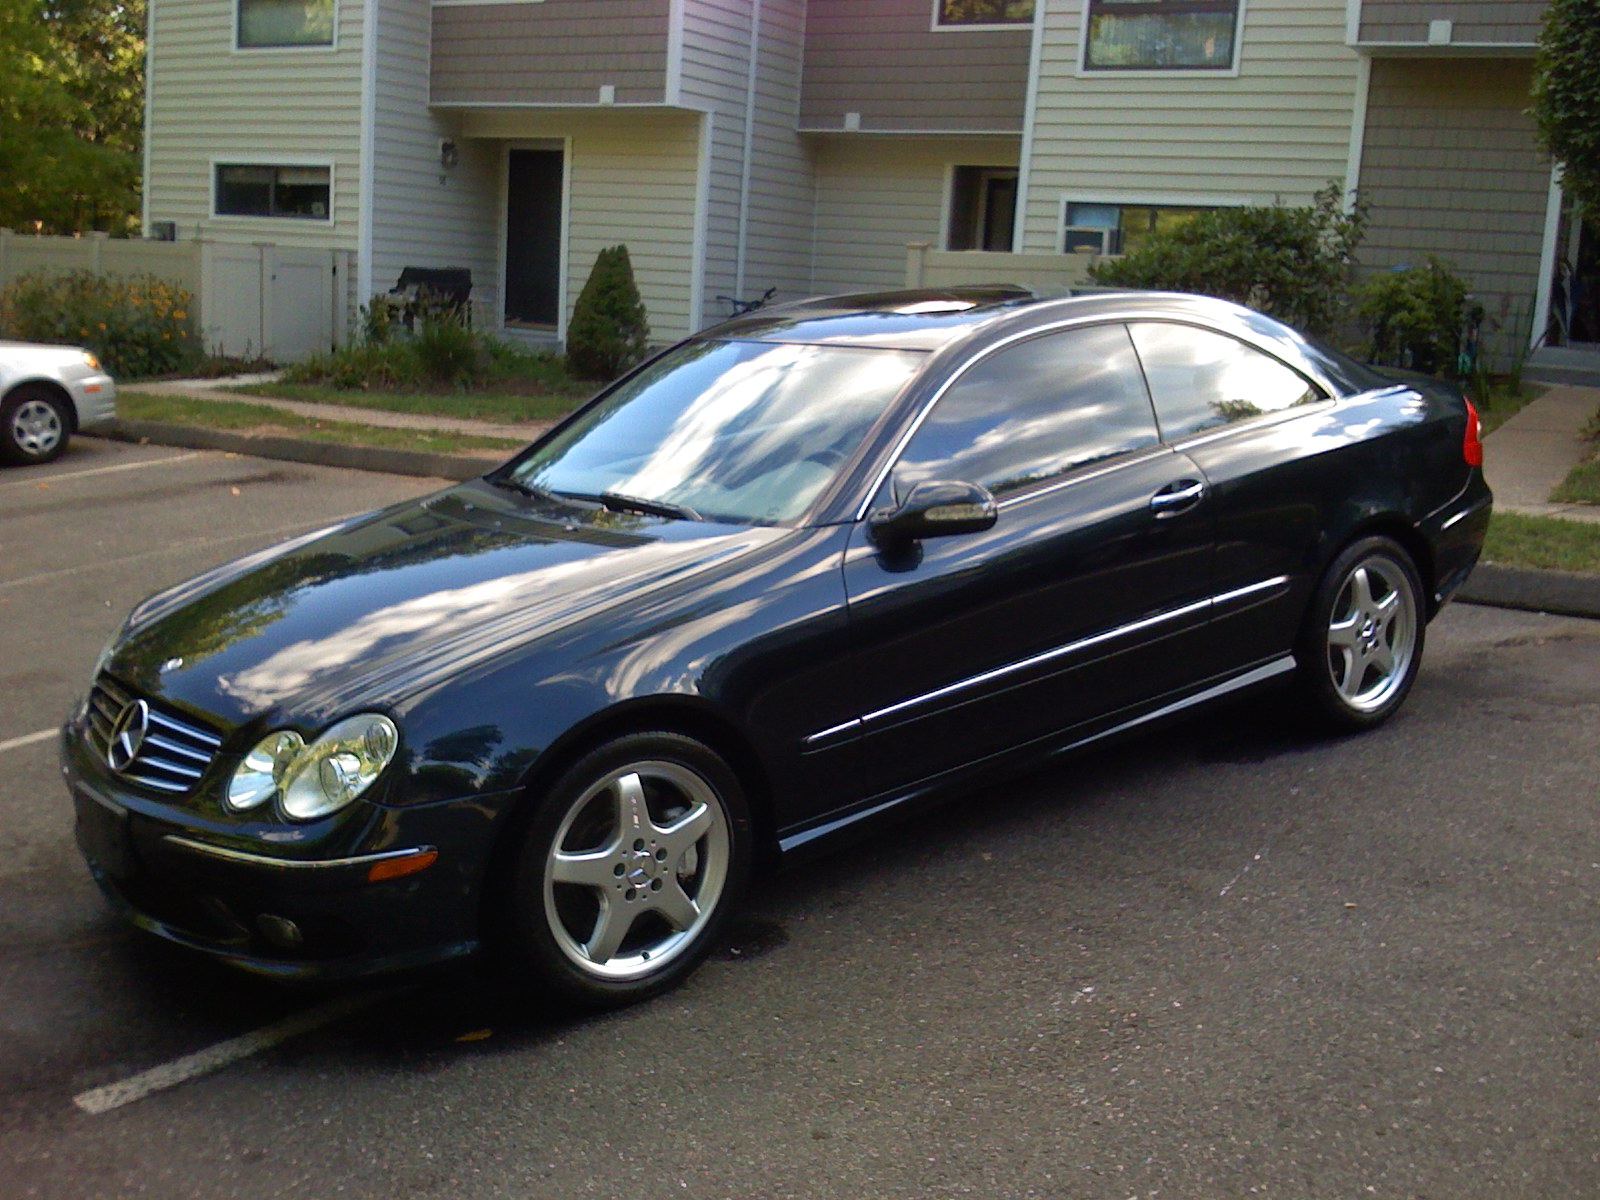 mercedes-benz clk 500 coupe #2